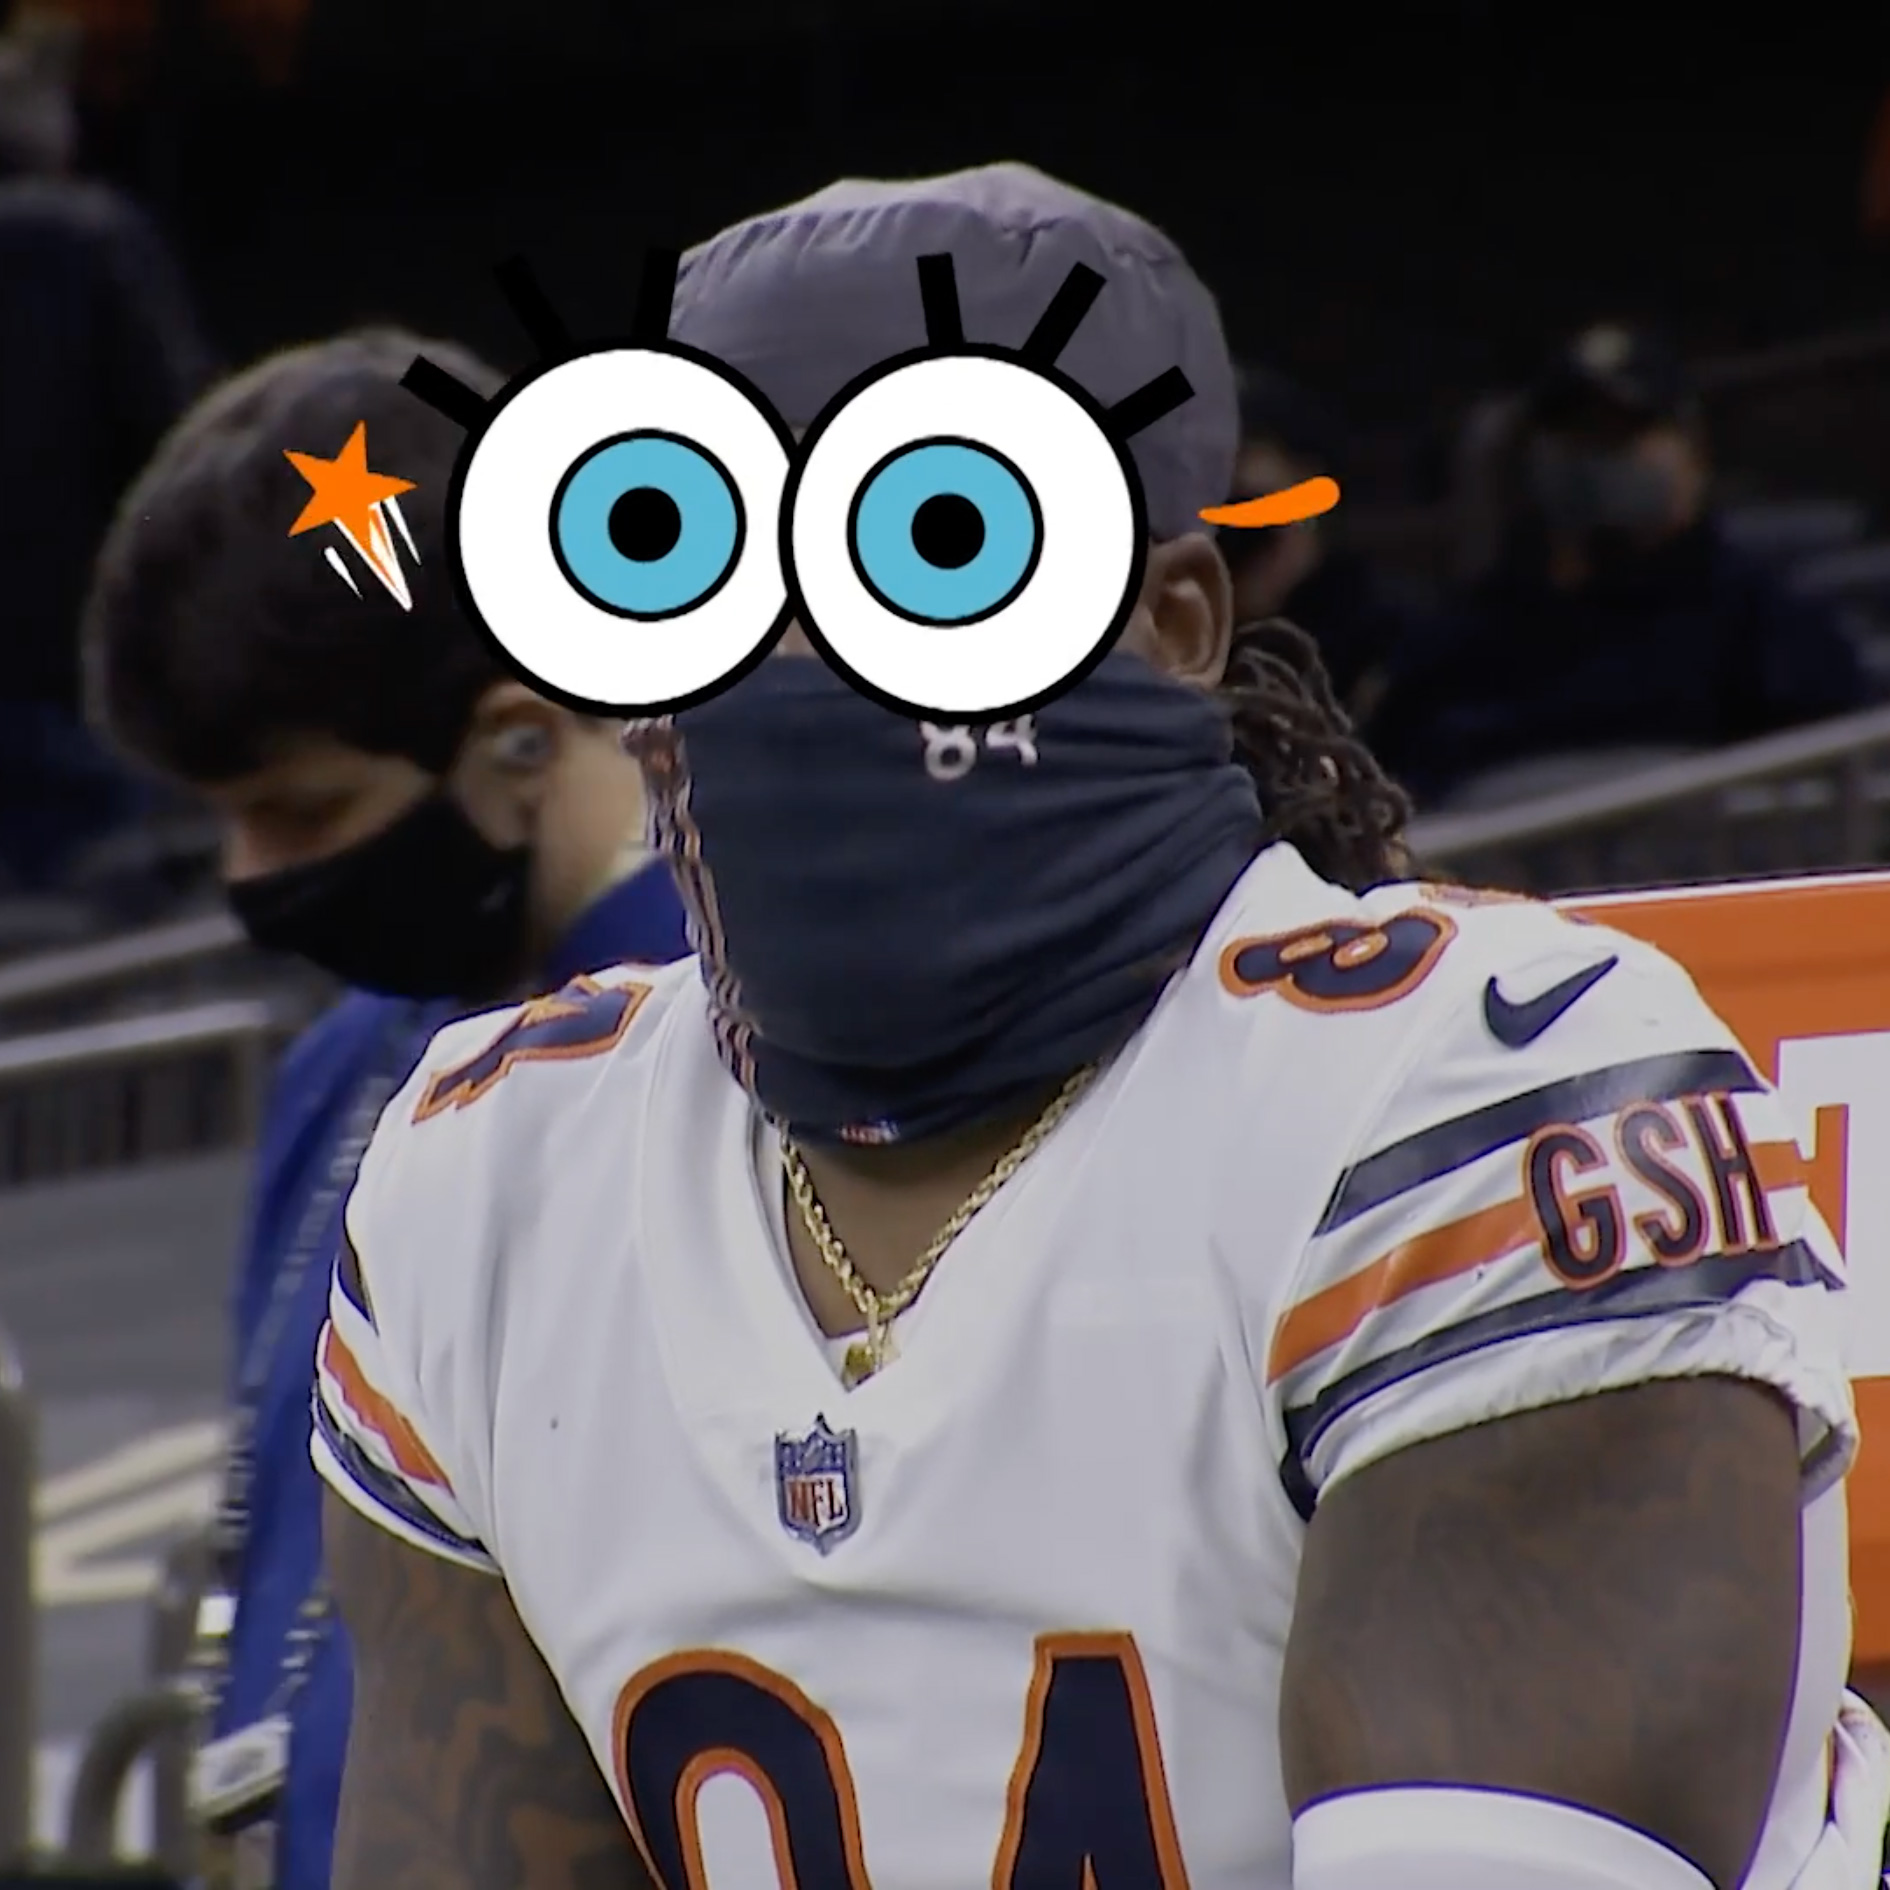 The NFL on Nickelodeon